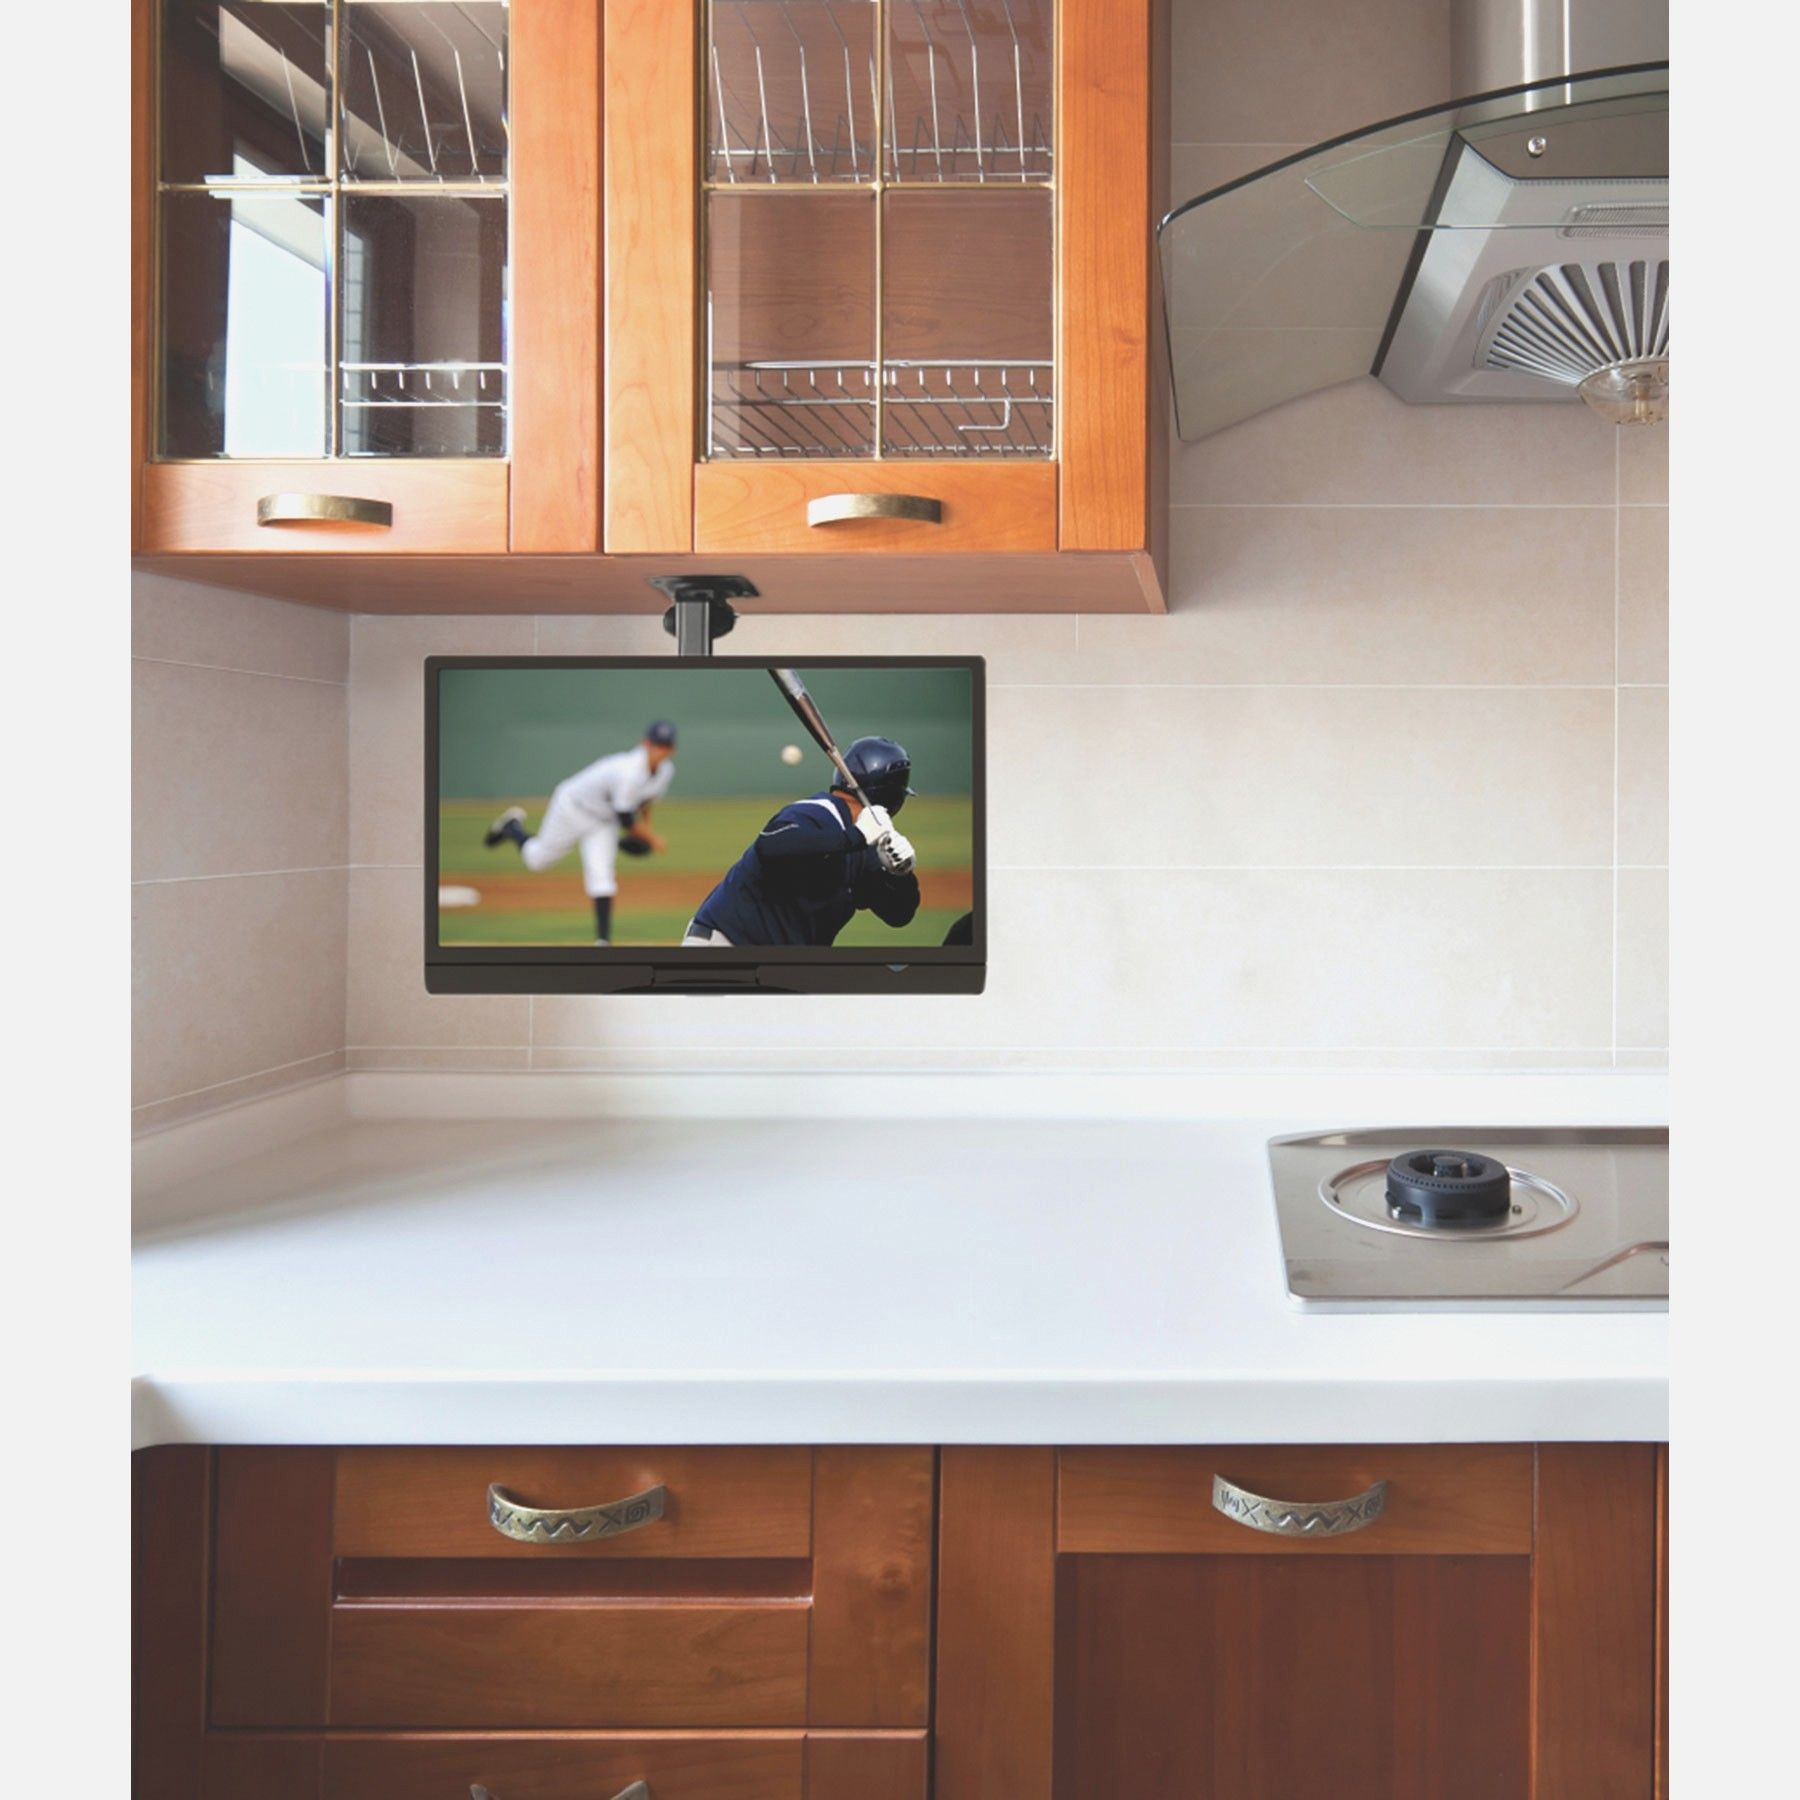 Under the Cabinet Tv for the Kitchen best under cabinet tv for kitchen under cabinet mount tv for kitchen under cabinet tv in kitchen under cabinet tv